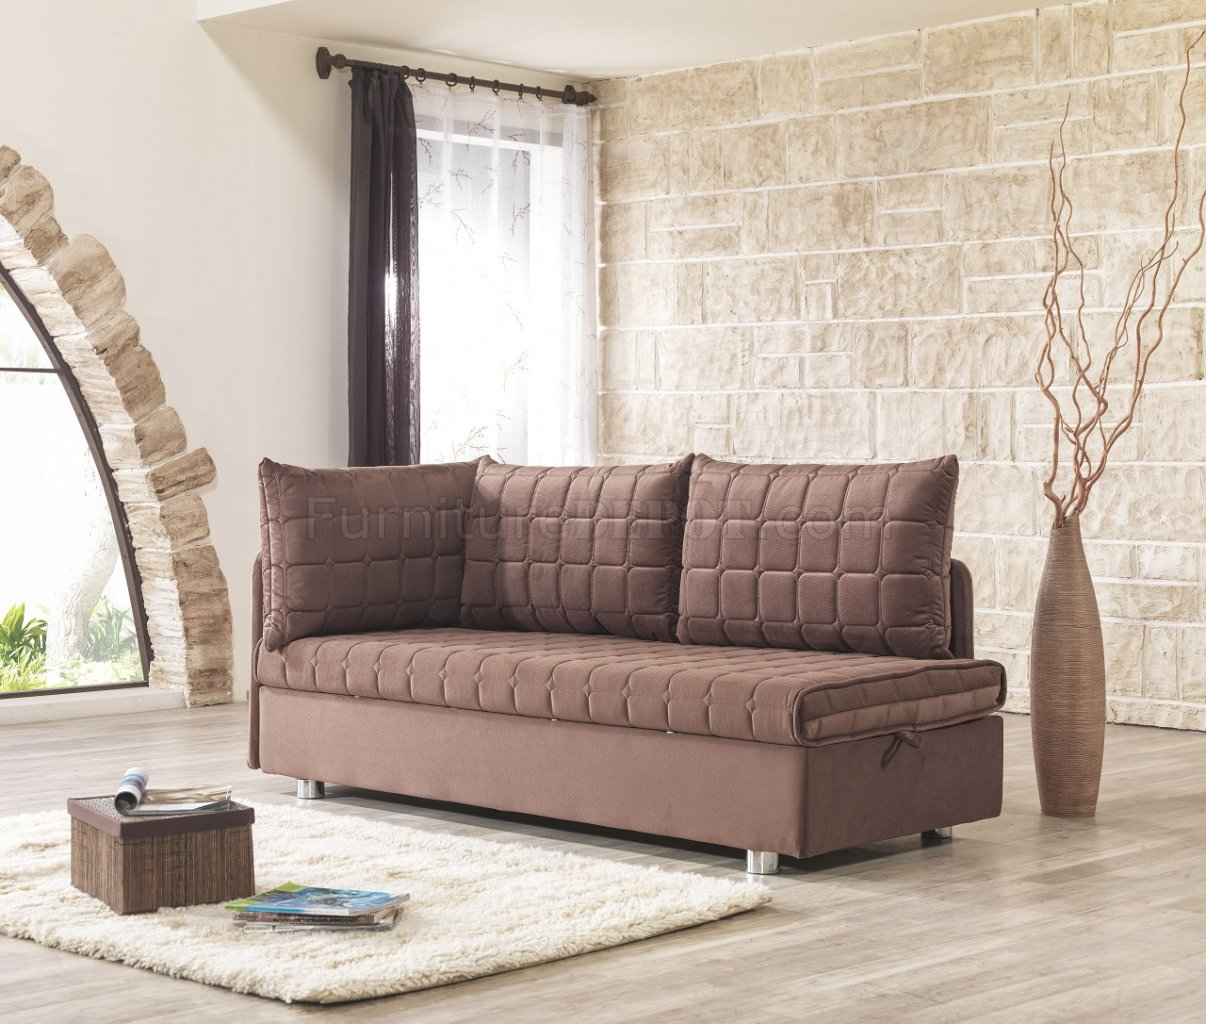 day night sleeper sofa online stores uk bed furniture by molteni thesofa